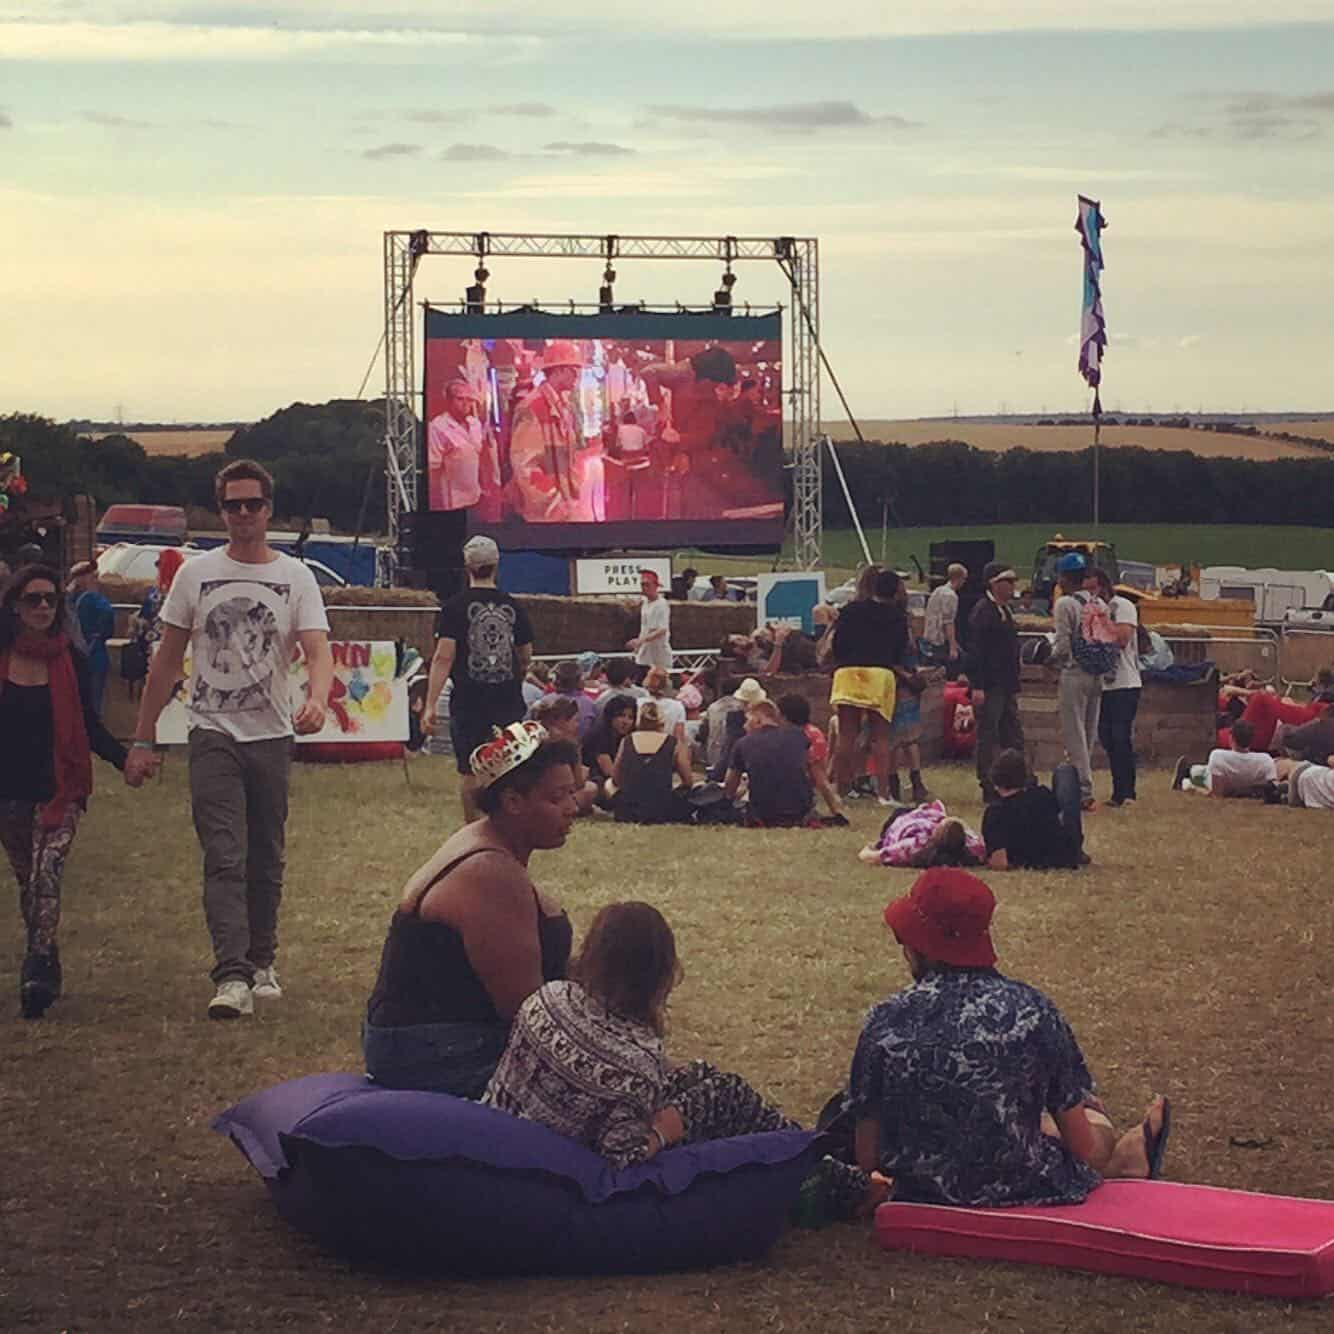 Farr Festival 2015 Outdoor Cinema LED Screen Video Hire Films